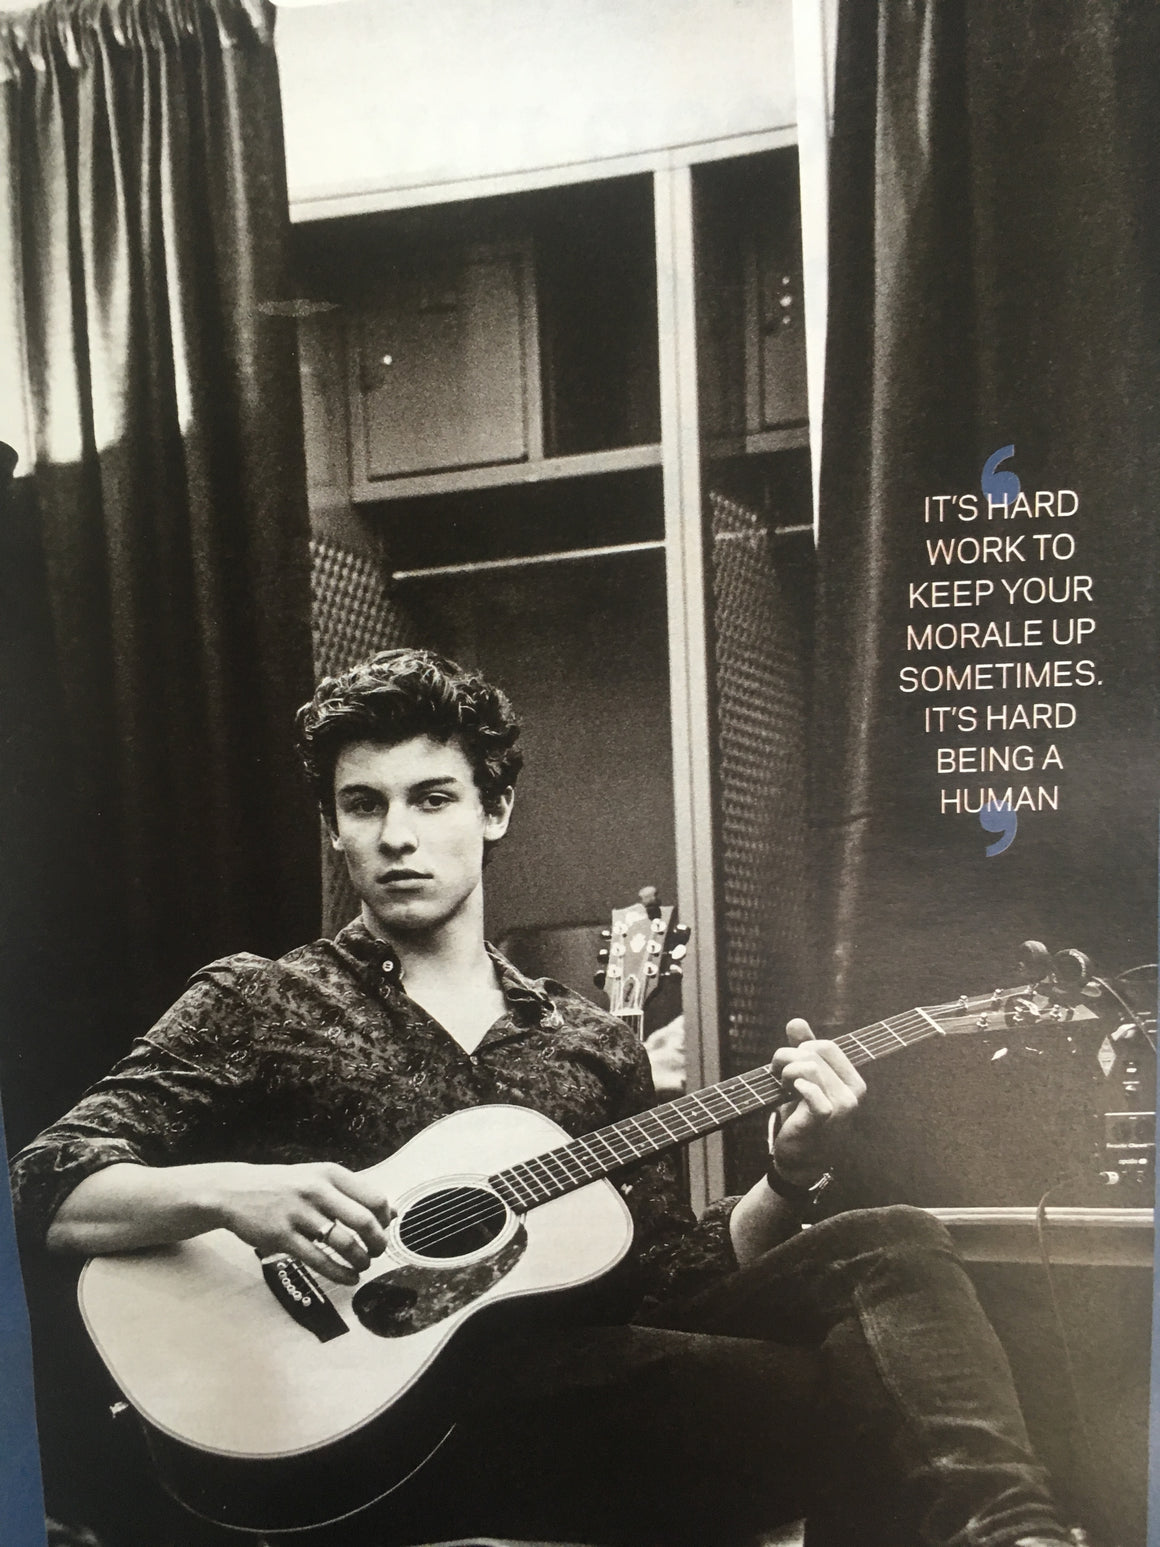 UK Style Magazine August 2018: SHAWN MENDES Interview